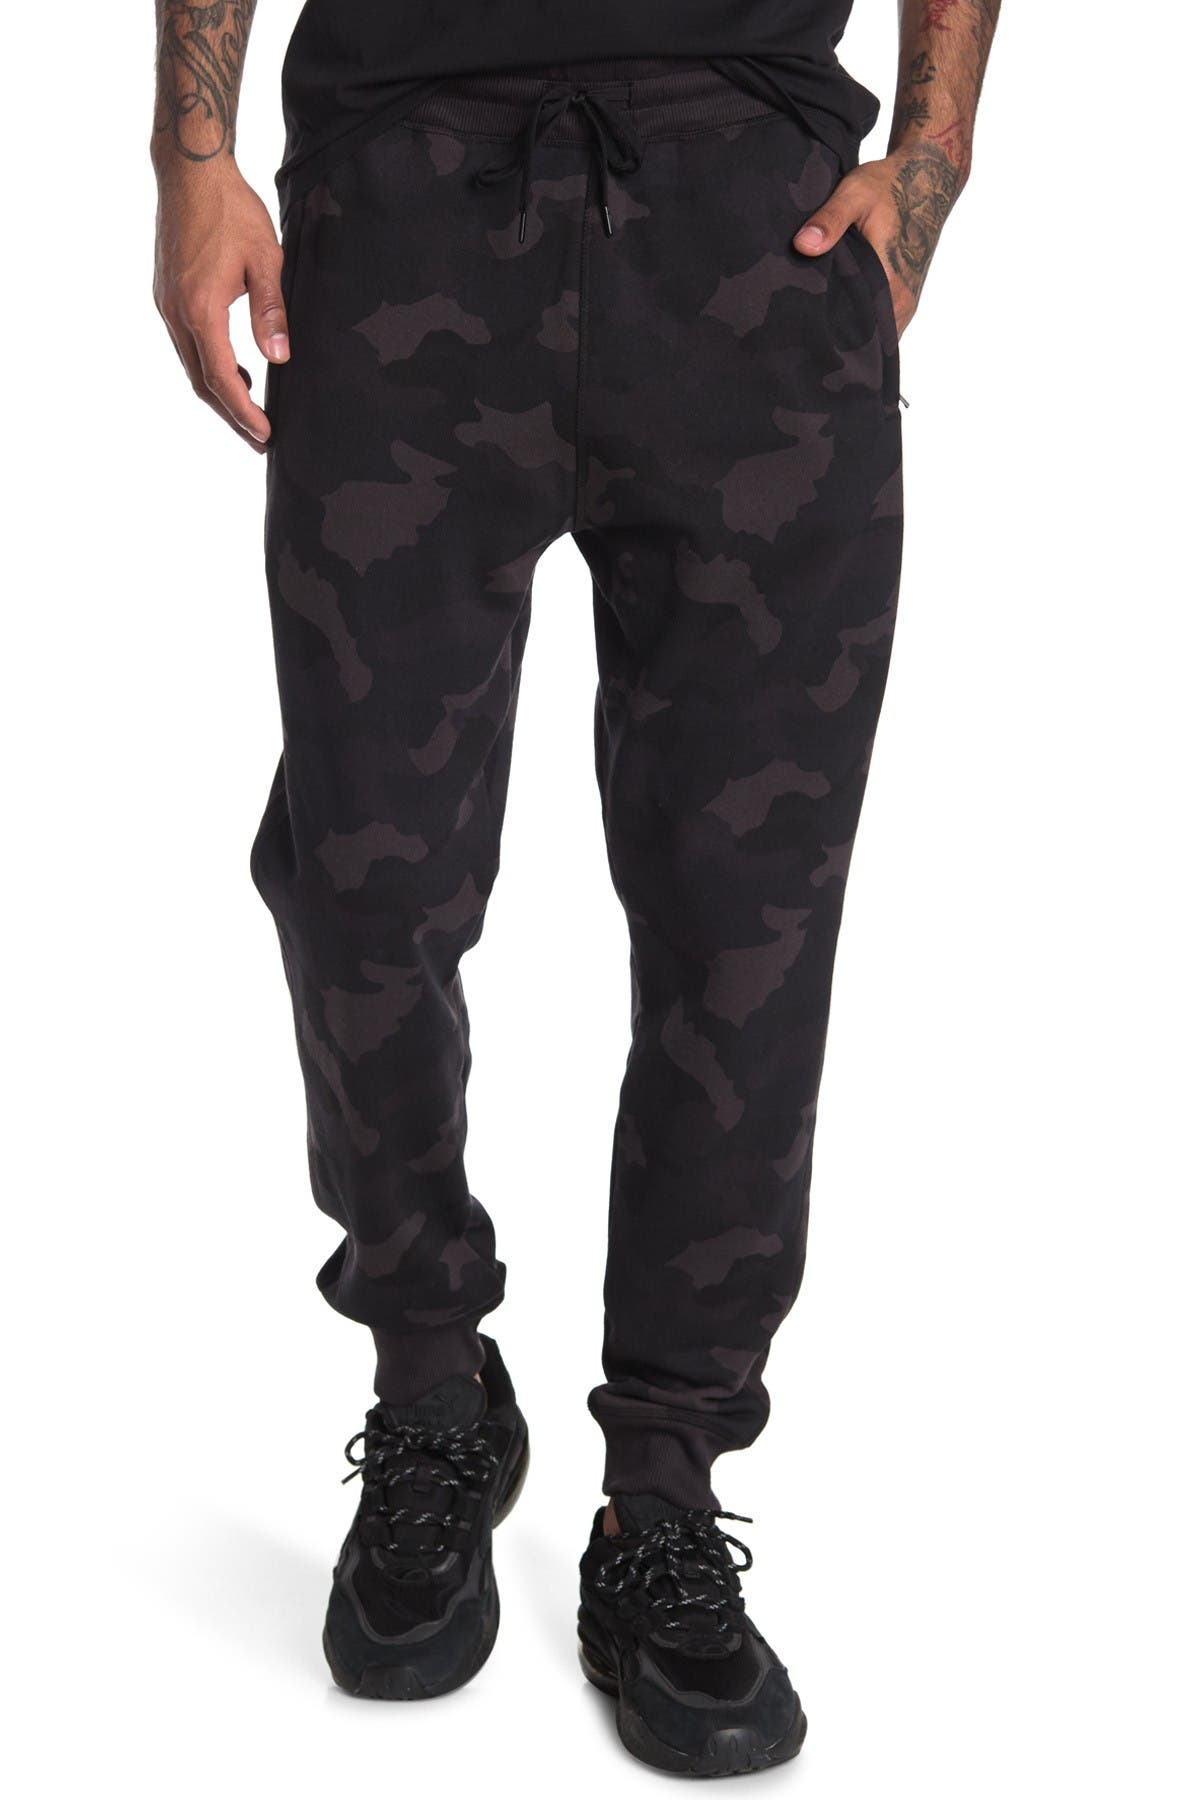 Image of 90 Degree By Reflex Brushed Fleece Joggers